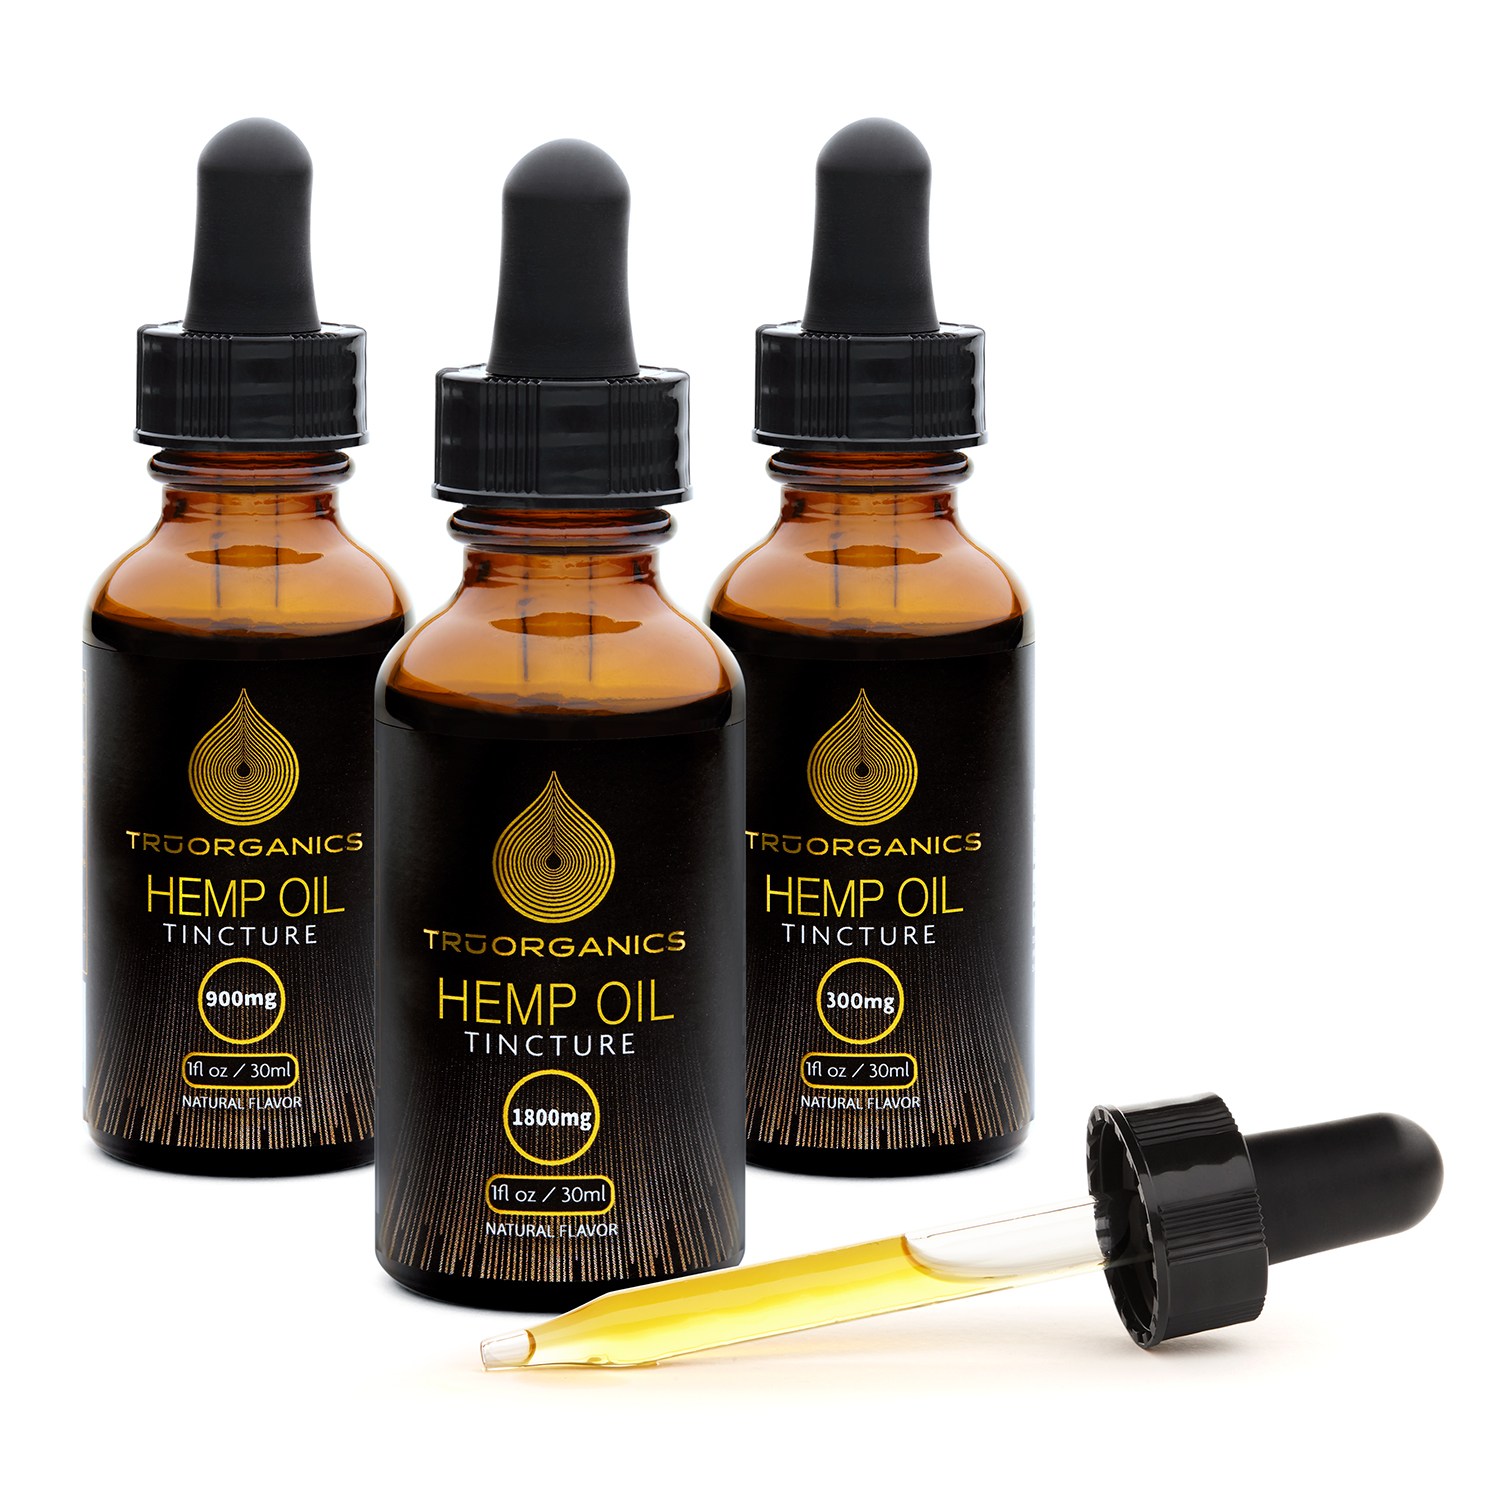 TruOrganics_CBD_Oil_wDropper_Group.jpg